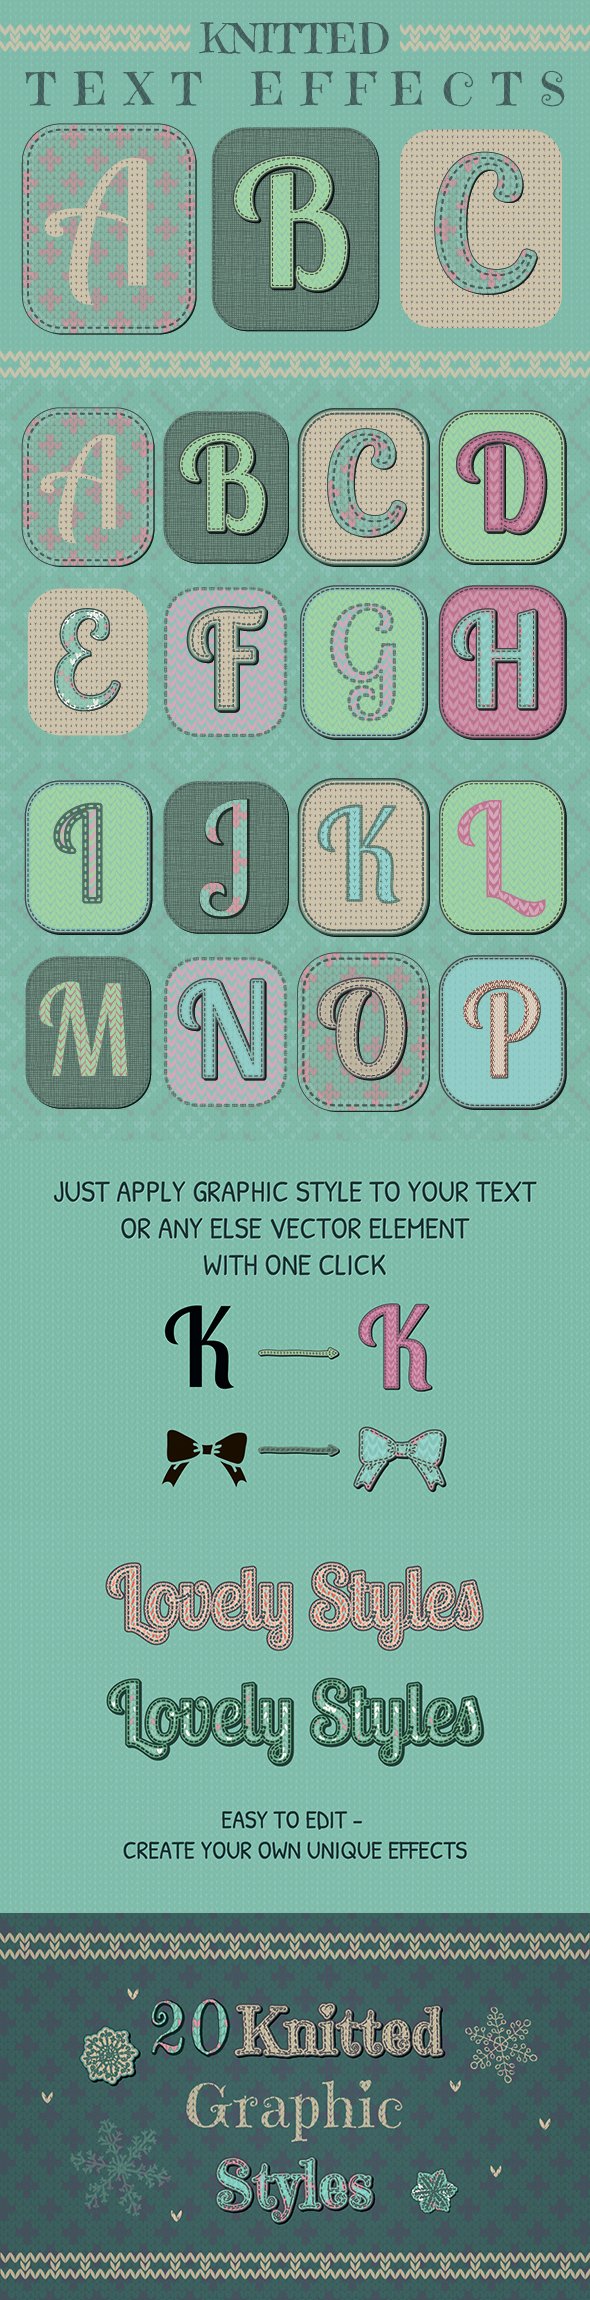 Knitted Text Effects. Graphic Styles - Styles Illustrator